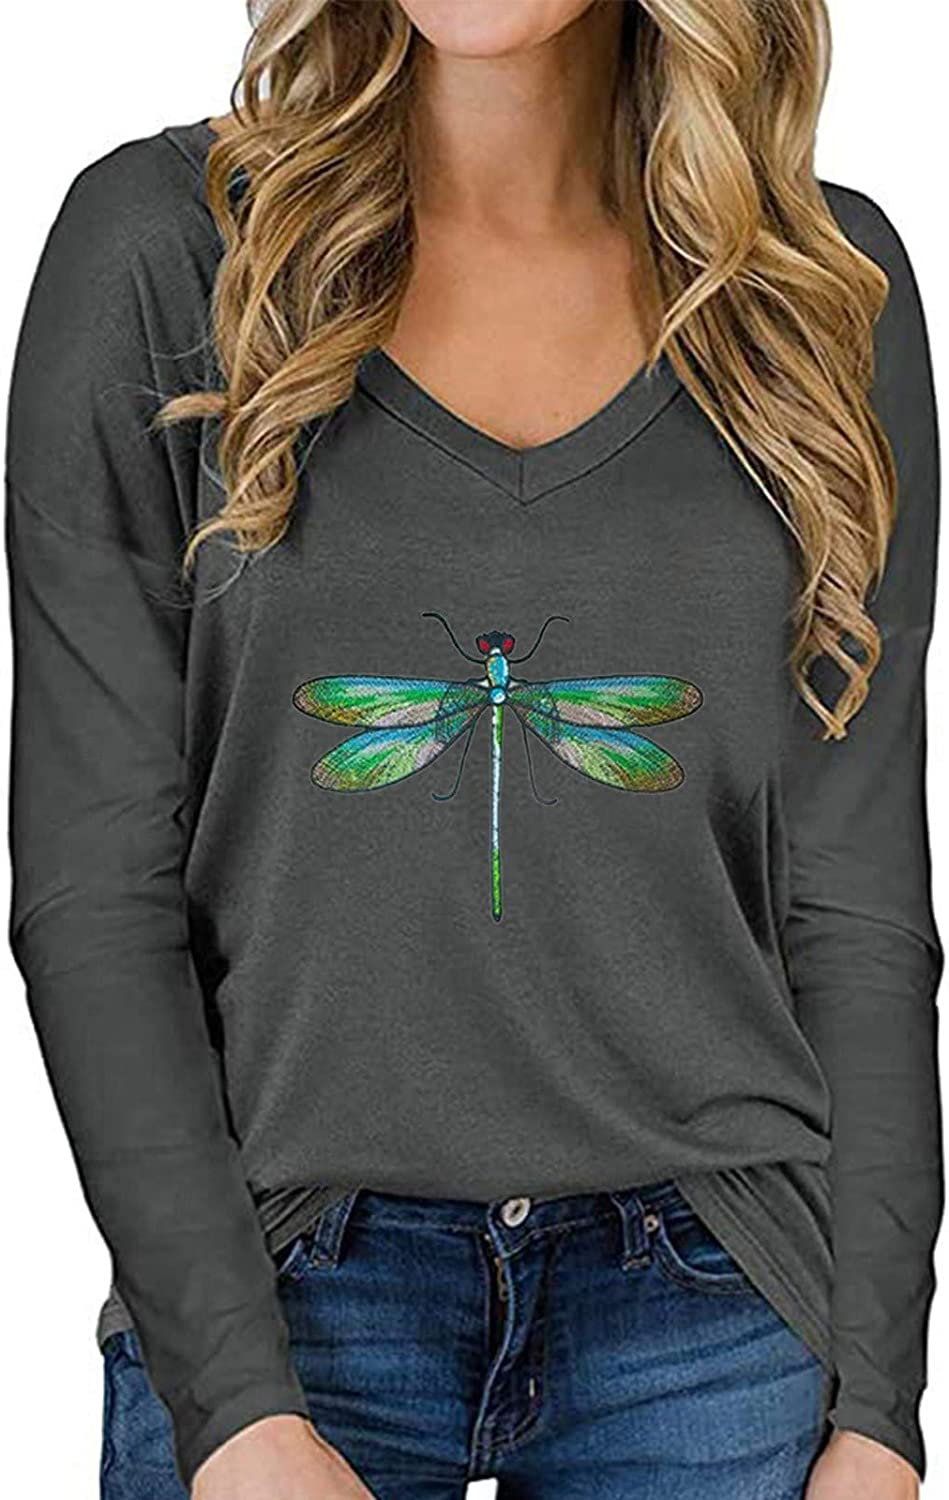 Dragonfly Shirts for Women Long/Short Sleeve Crewneck Tops One Dragonfly Graphic Tees Dragonfly Lover